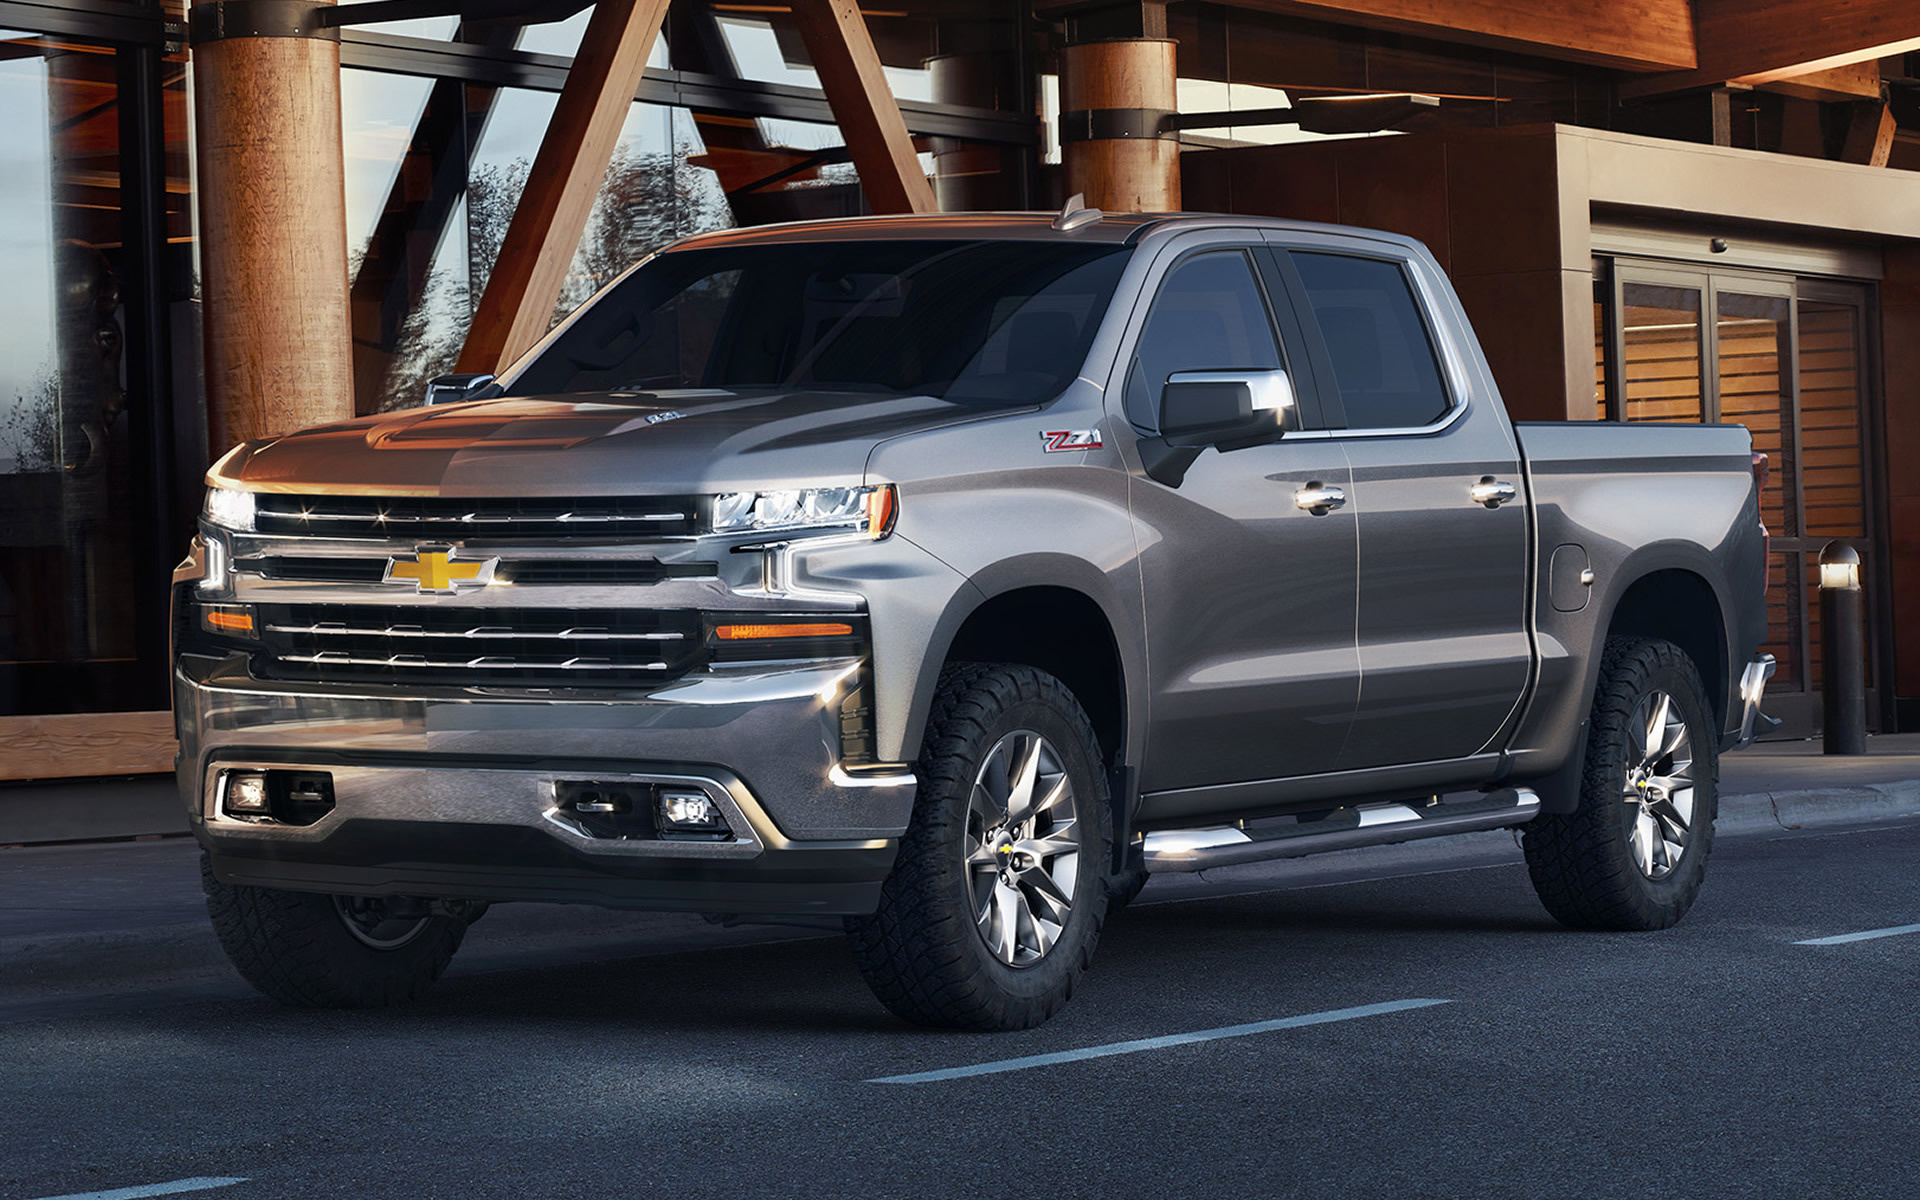 2019 Chevrolet Silverado Z71 Crew Cab Wallpapers And Hd